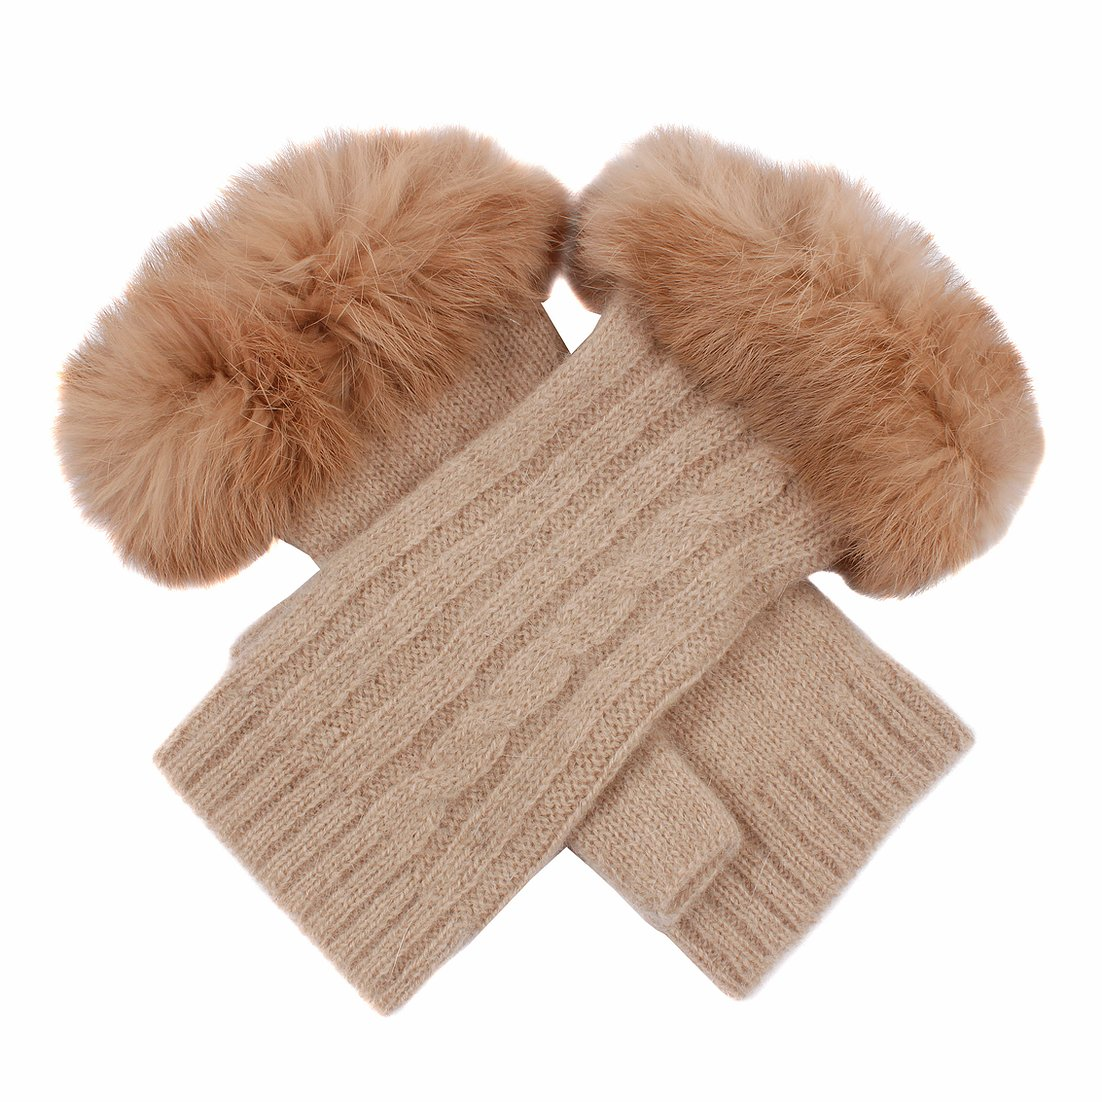 Dents fingerless gloves, oatmeal